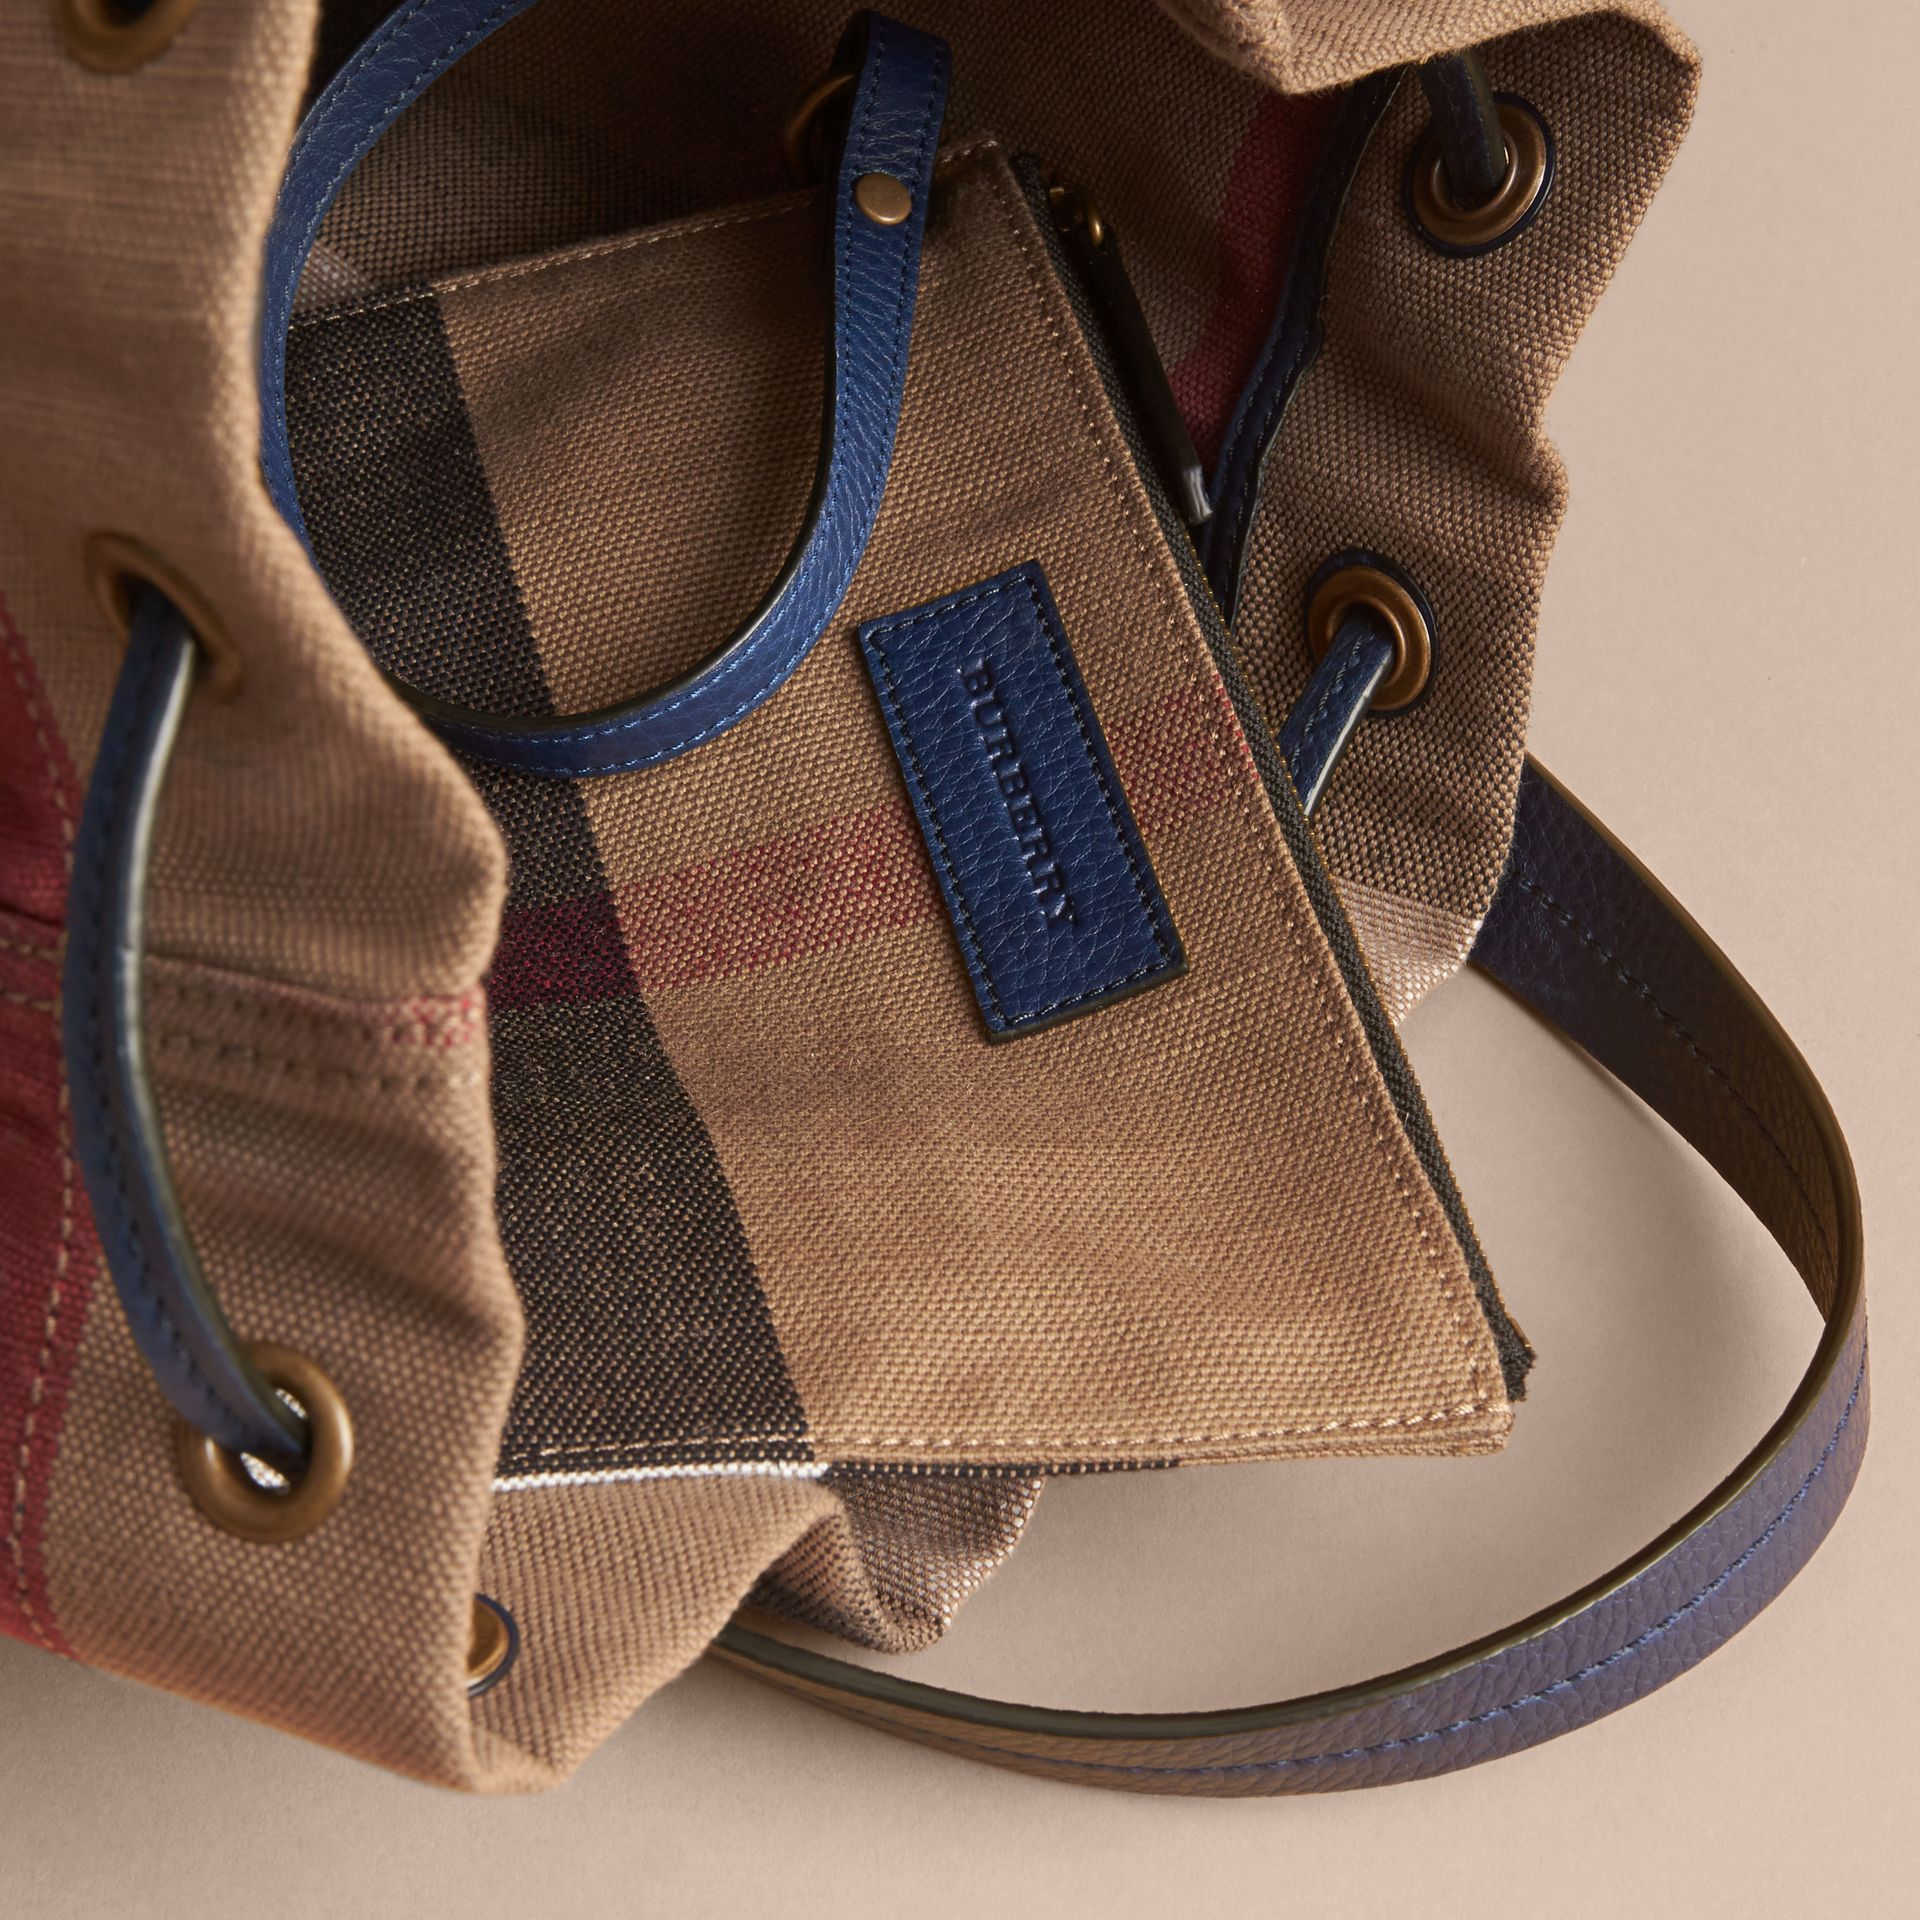 Medium Canvas Check and Leather Bucket Bag in Brilliant Navy - Women | Burberry - gallery image 6